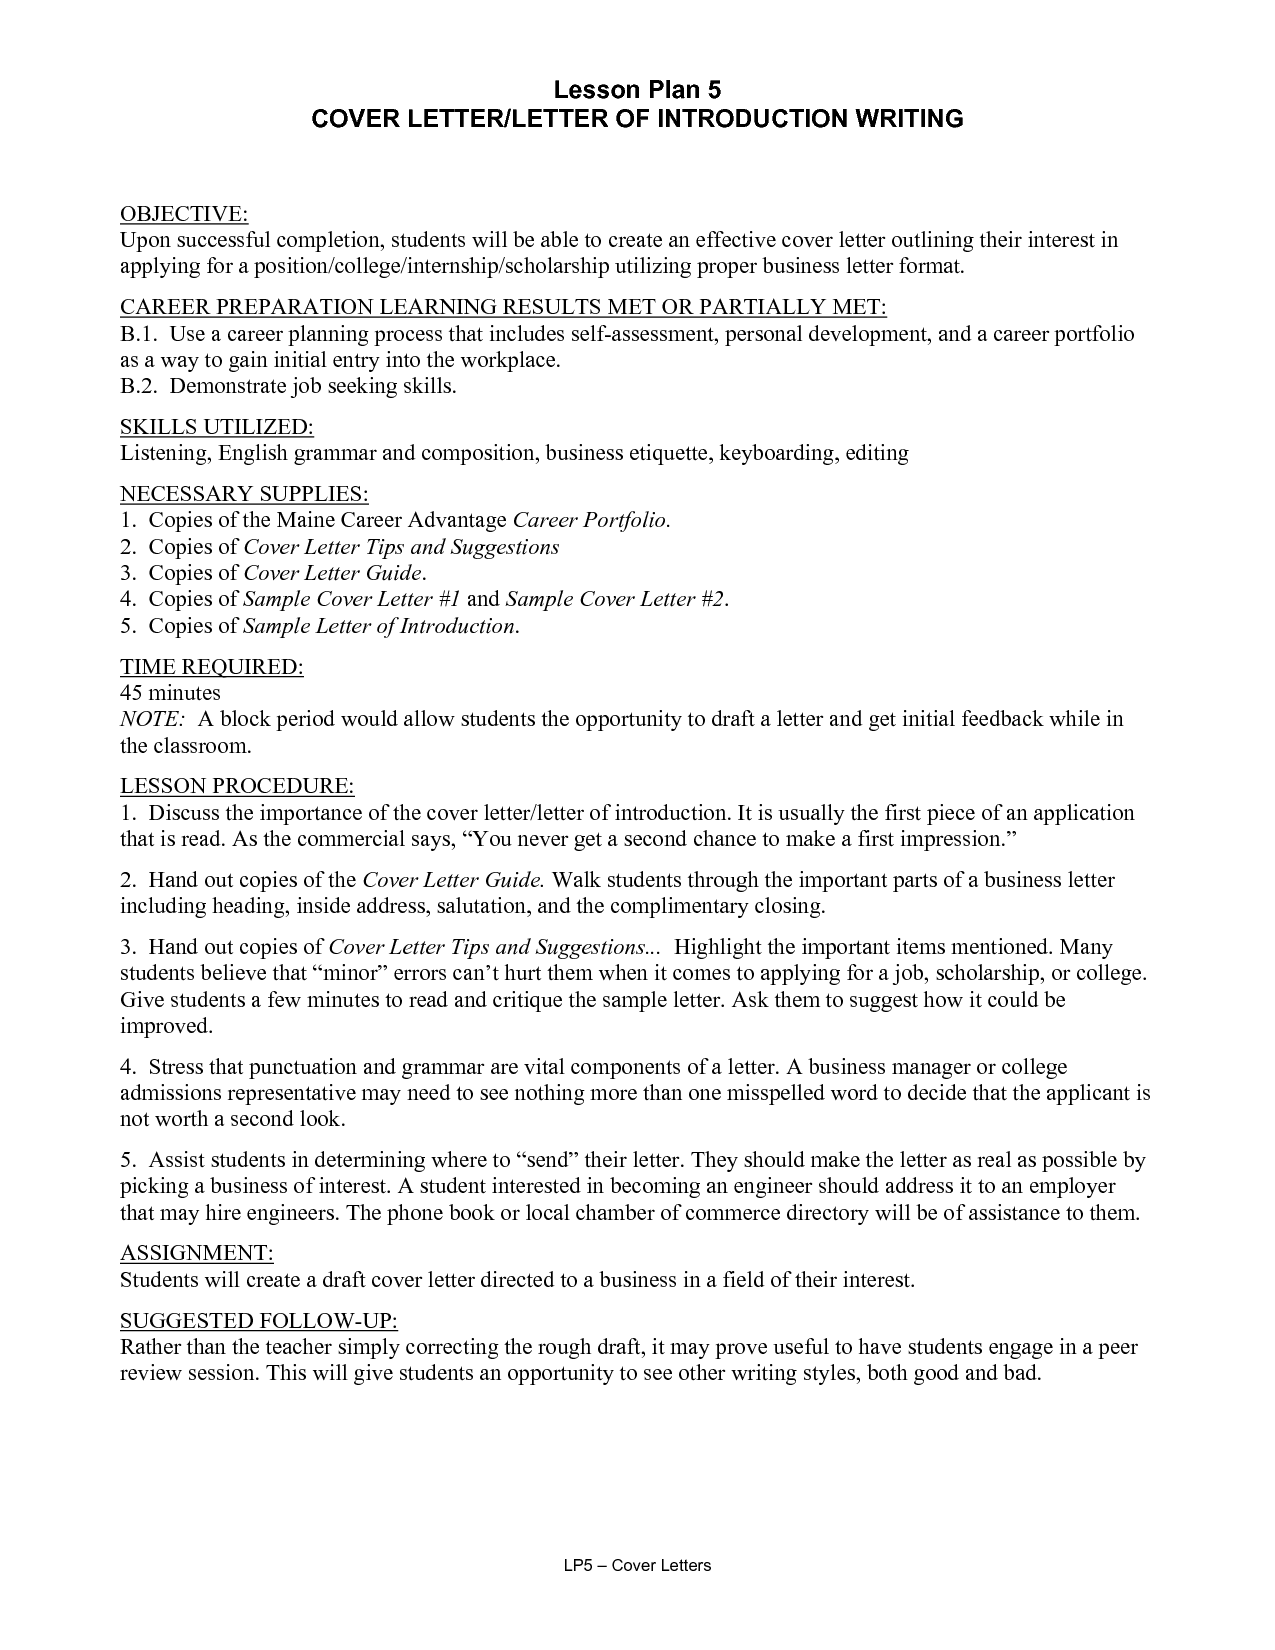 Teaching Writing Business Letter Students Lawteched Sample Resume